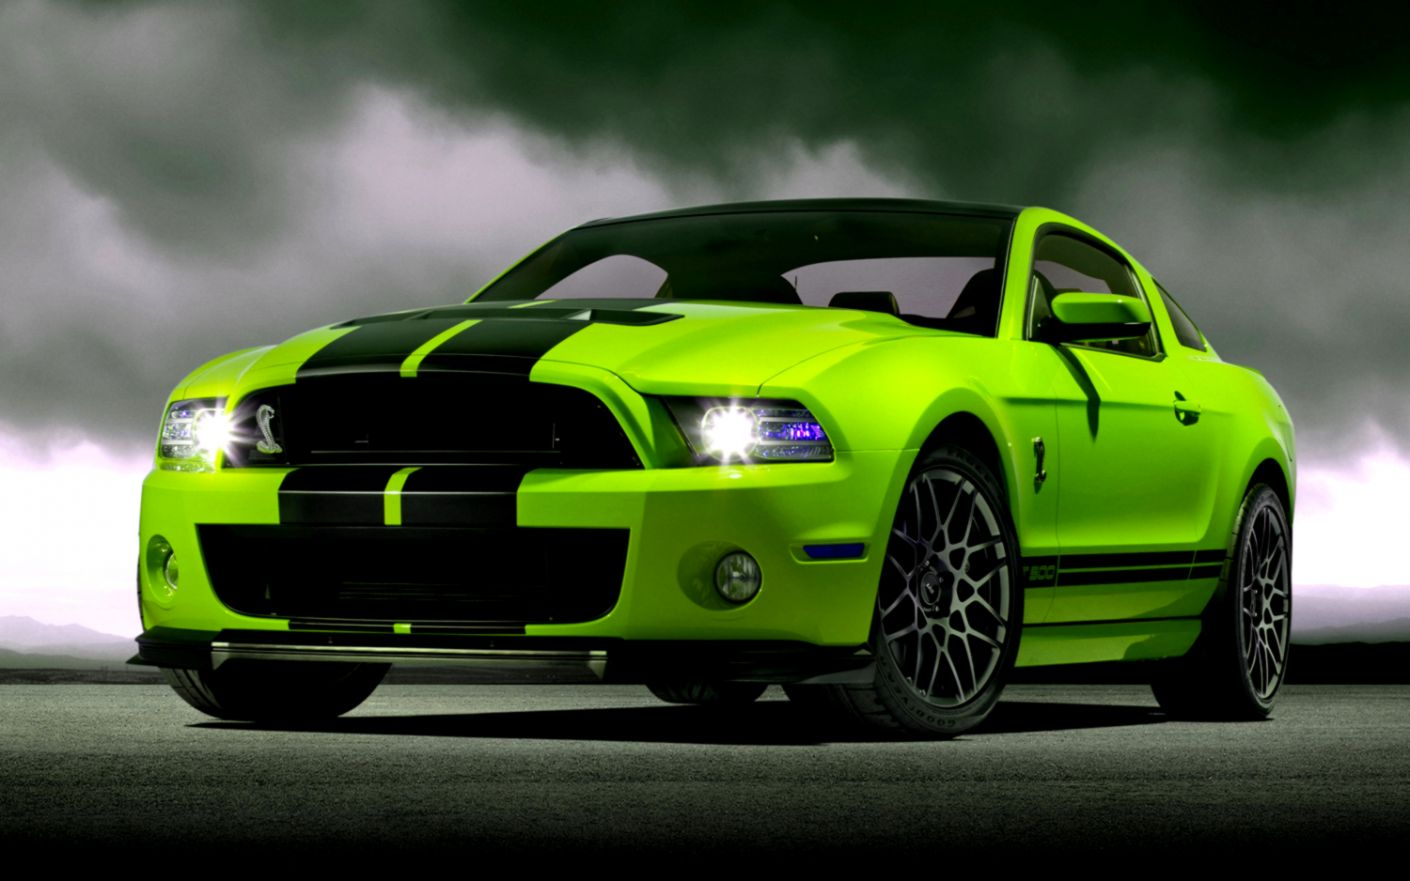 Wallpapers Hd Mustang Gt High Definitions Wallpapers